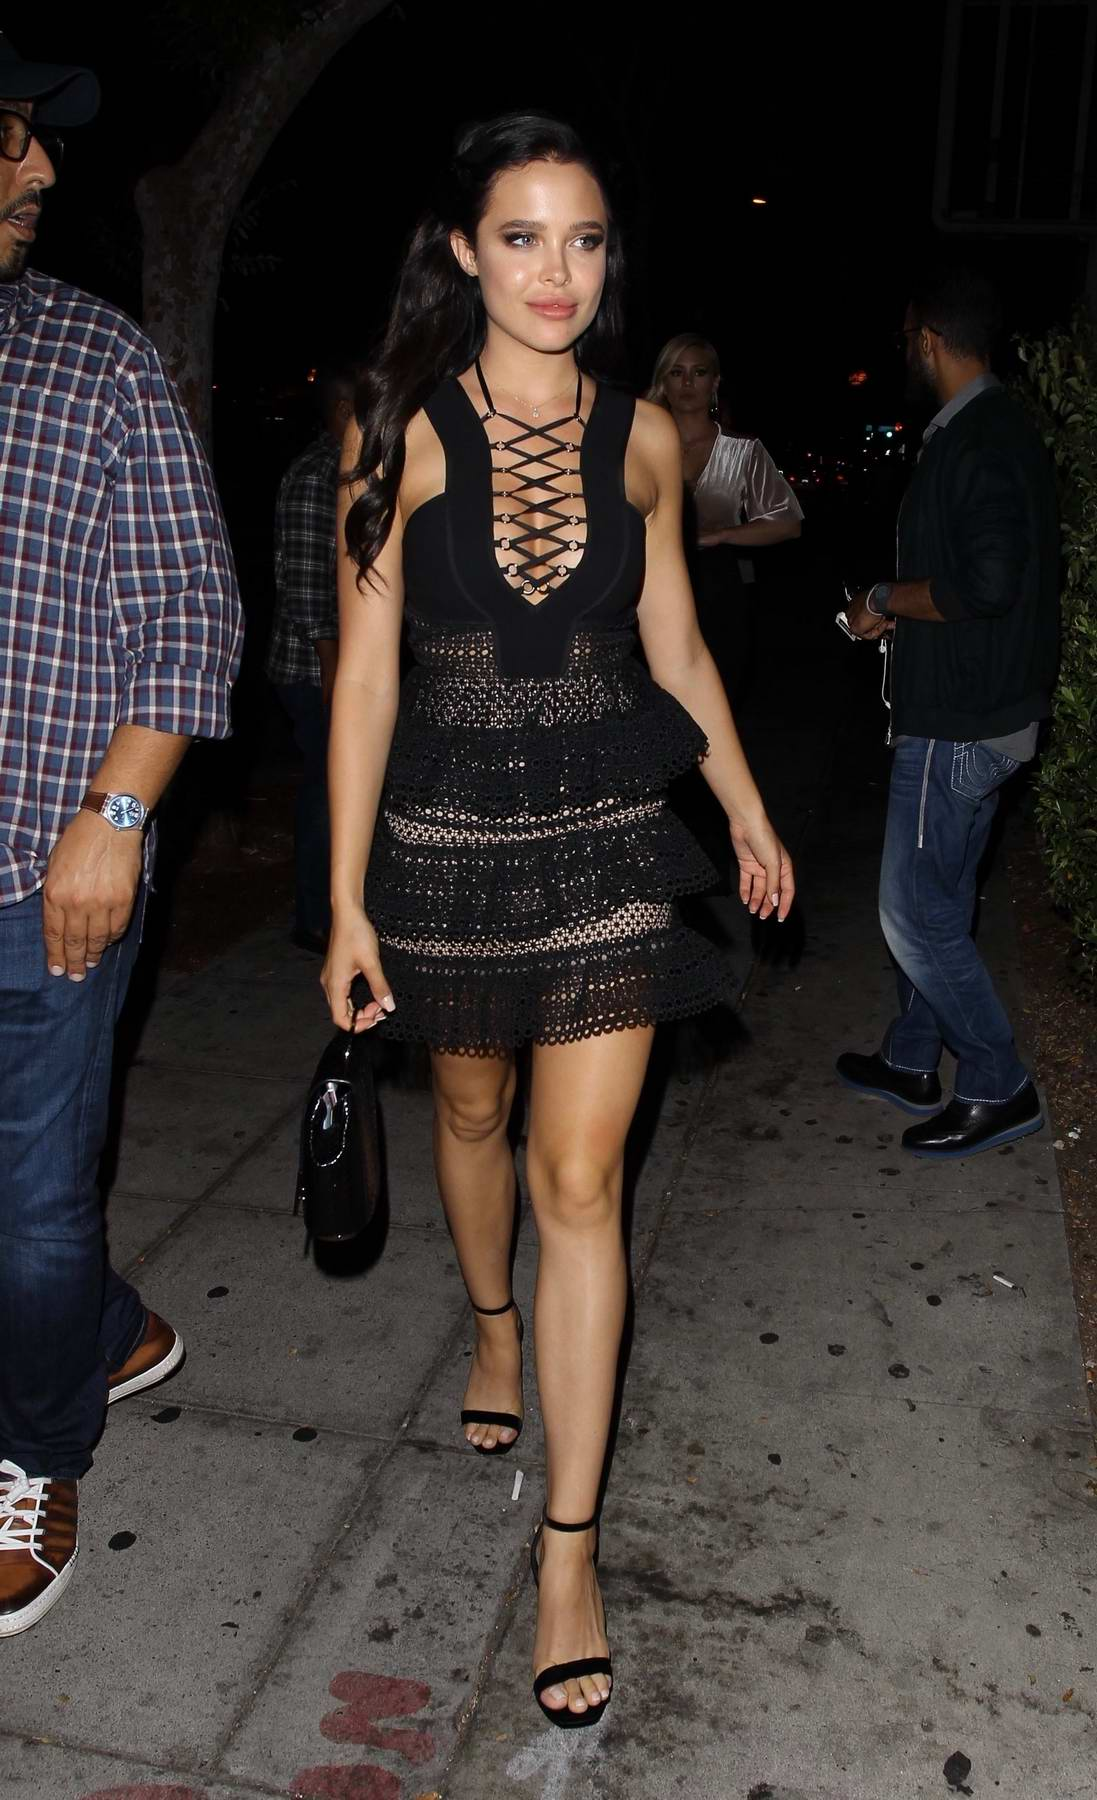 Mara Teigen poses for Photos in a Black Lacy Dress as she arrives at Delilah in West Hollywood